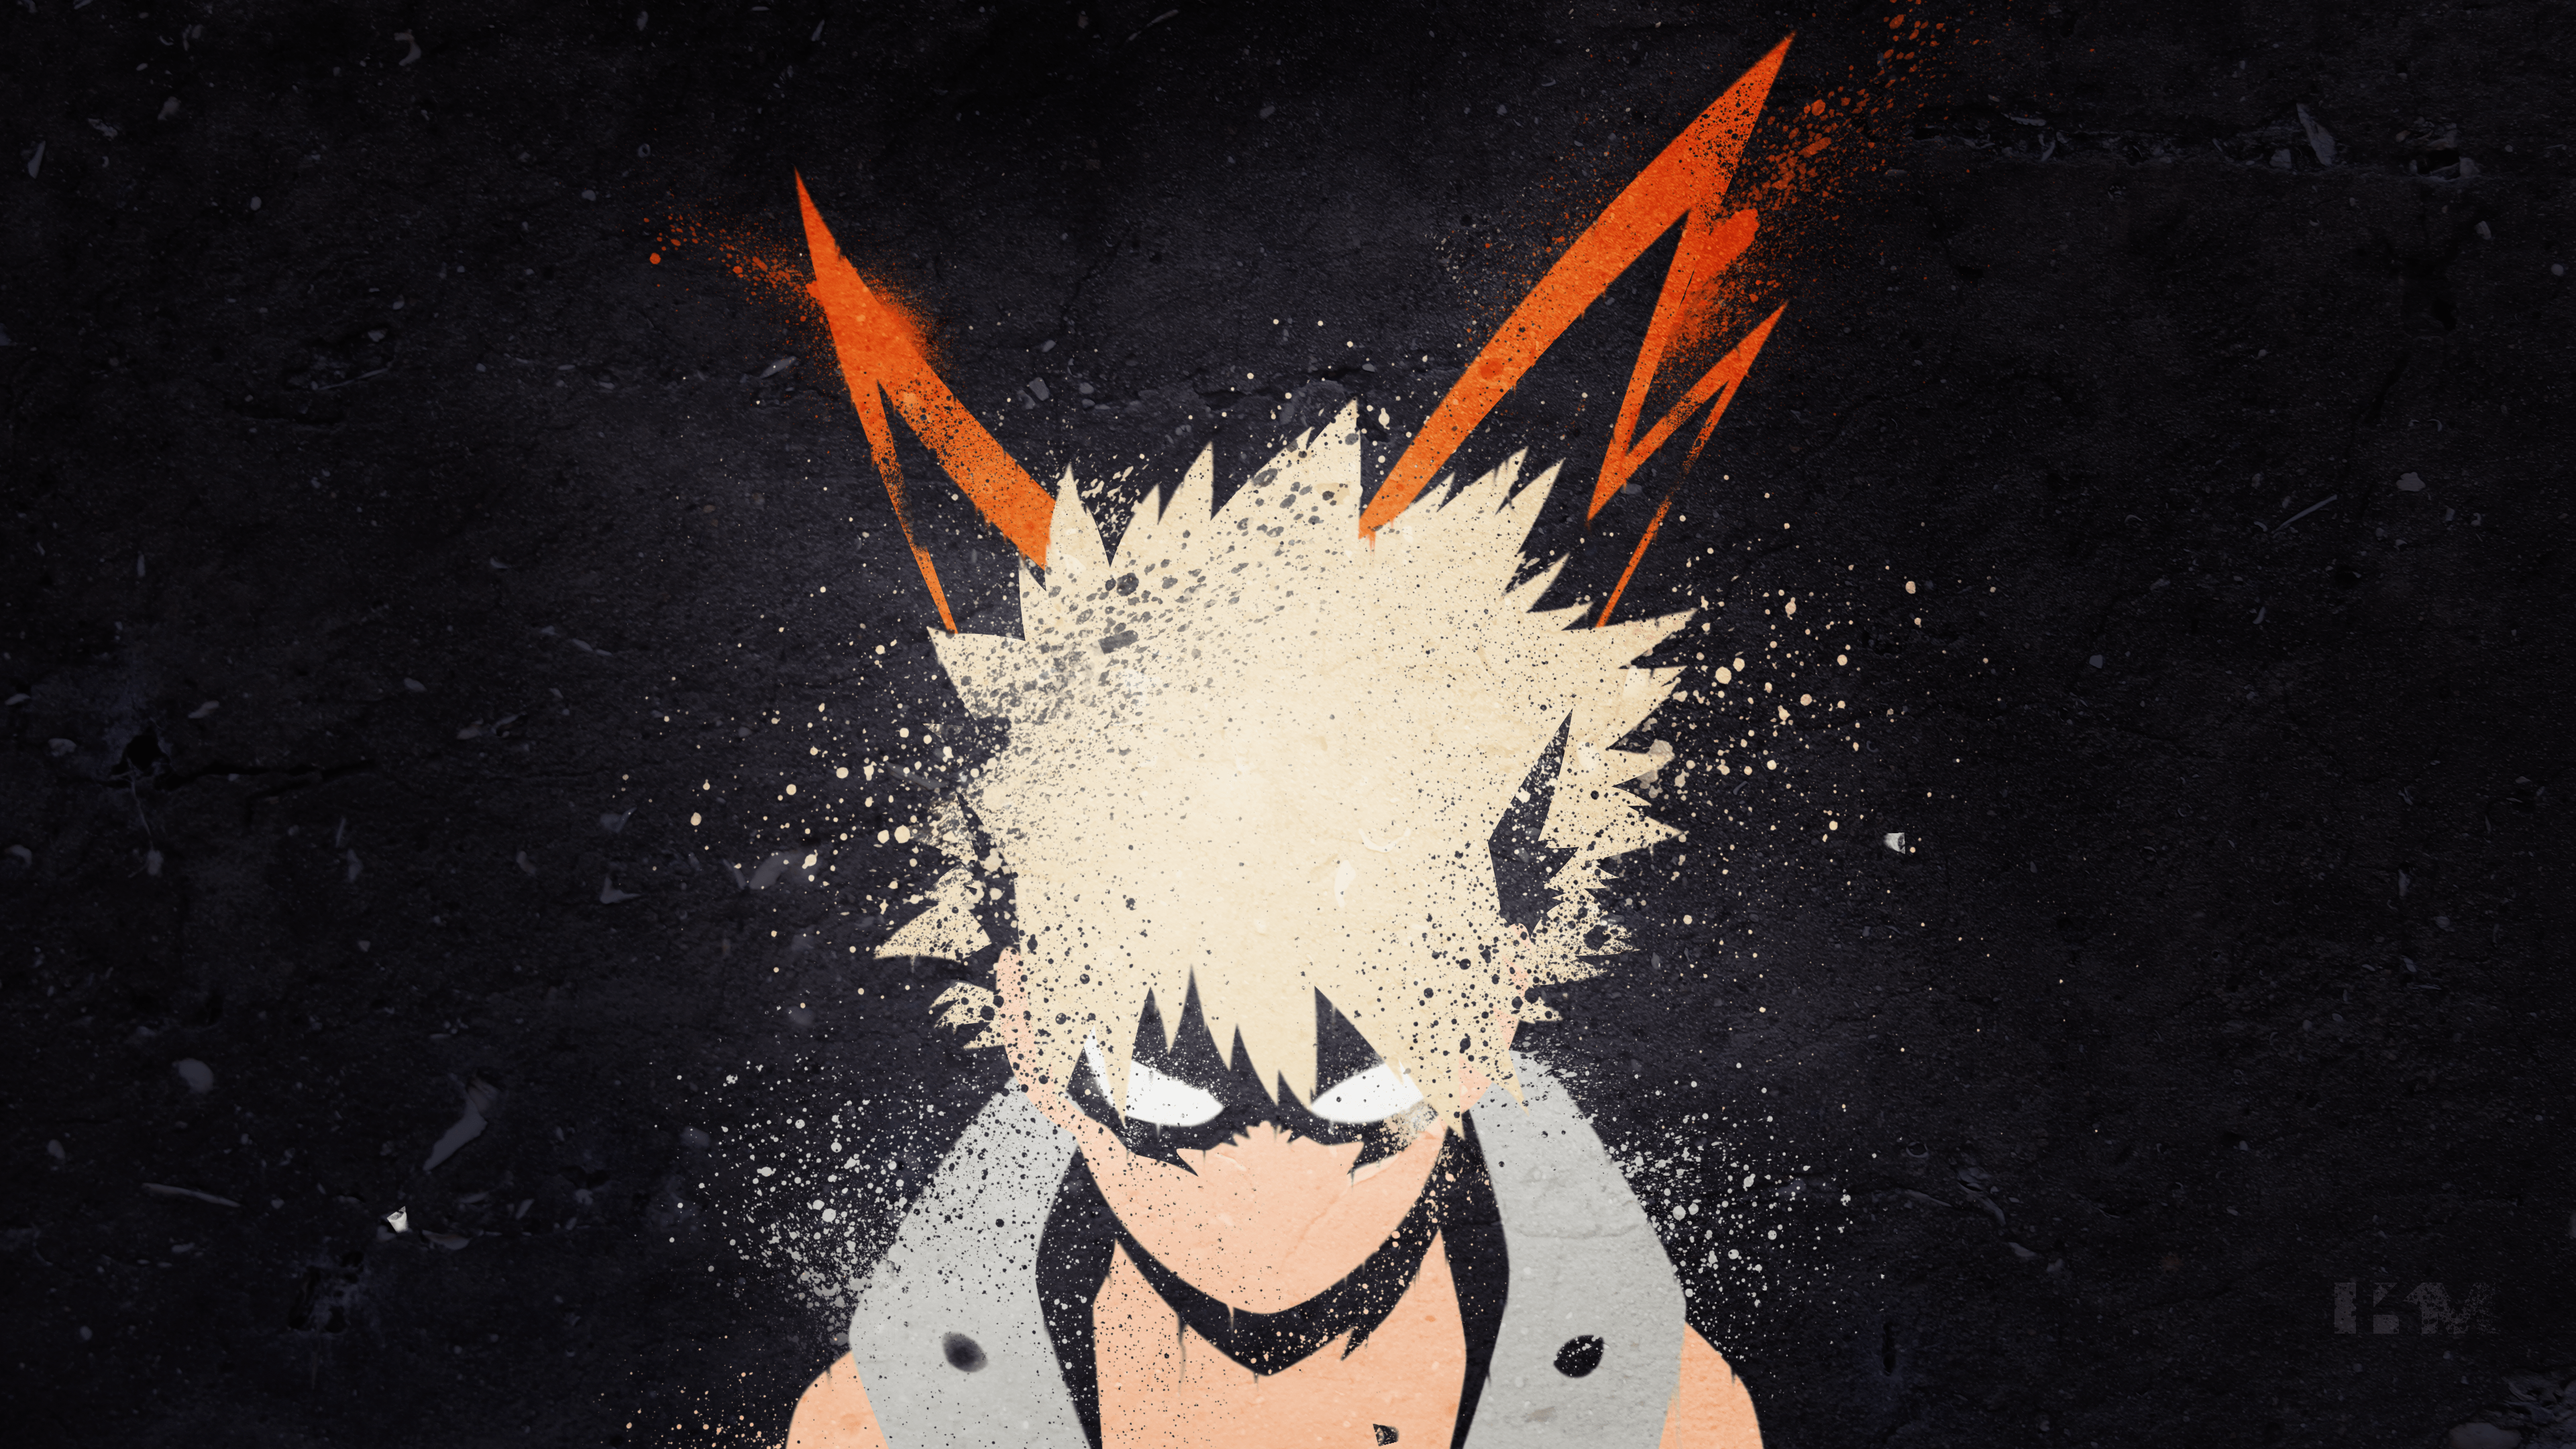 Zerochan has 217 aizawa shouta anime images, wallpapers, android/iphone wallpapers, fanart, cosplay pictures, and many more in its gallery. Boku No Hero Academia Wallpapers - Wallpaper Cave